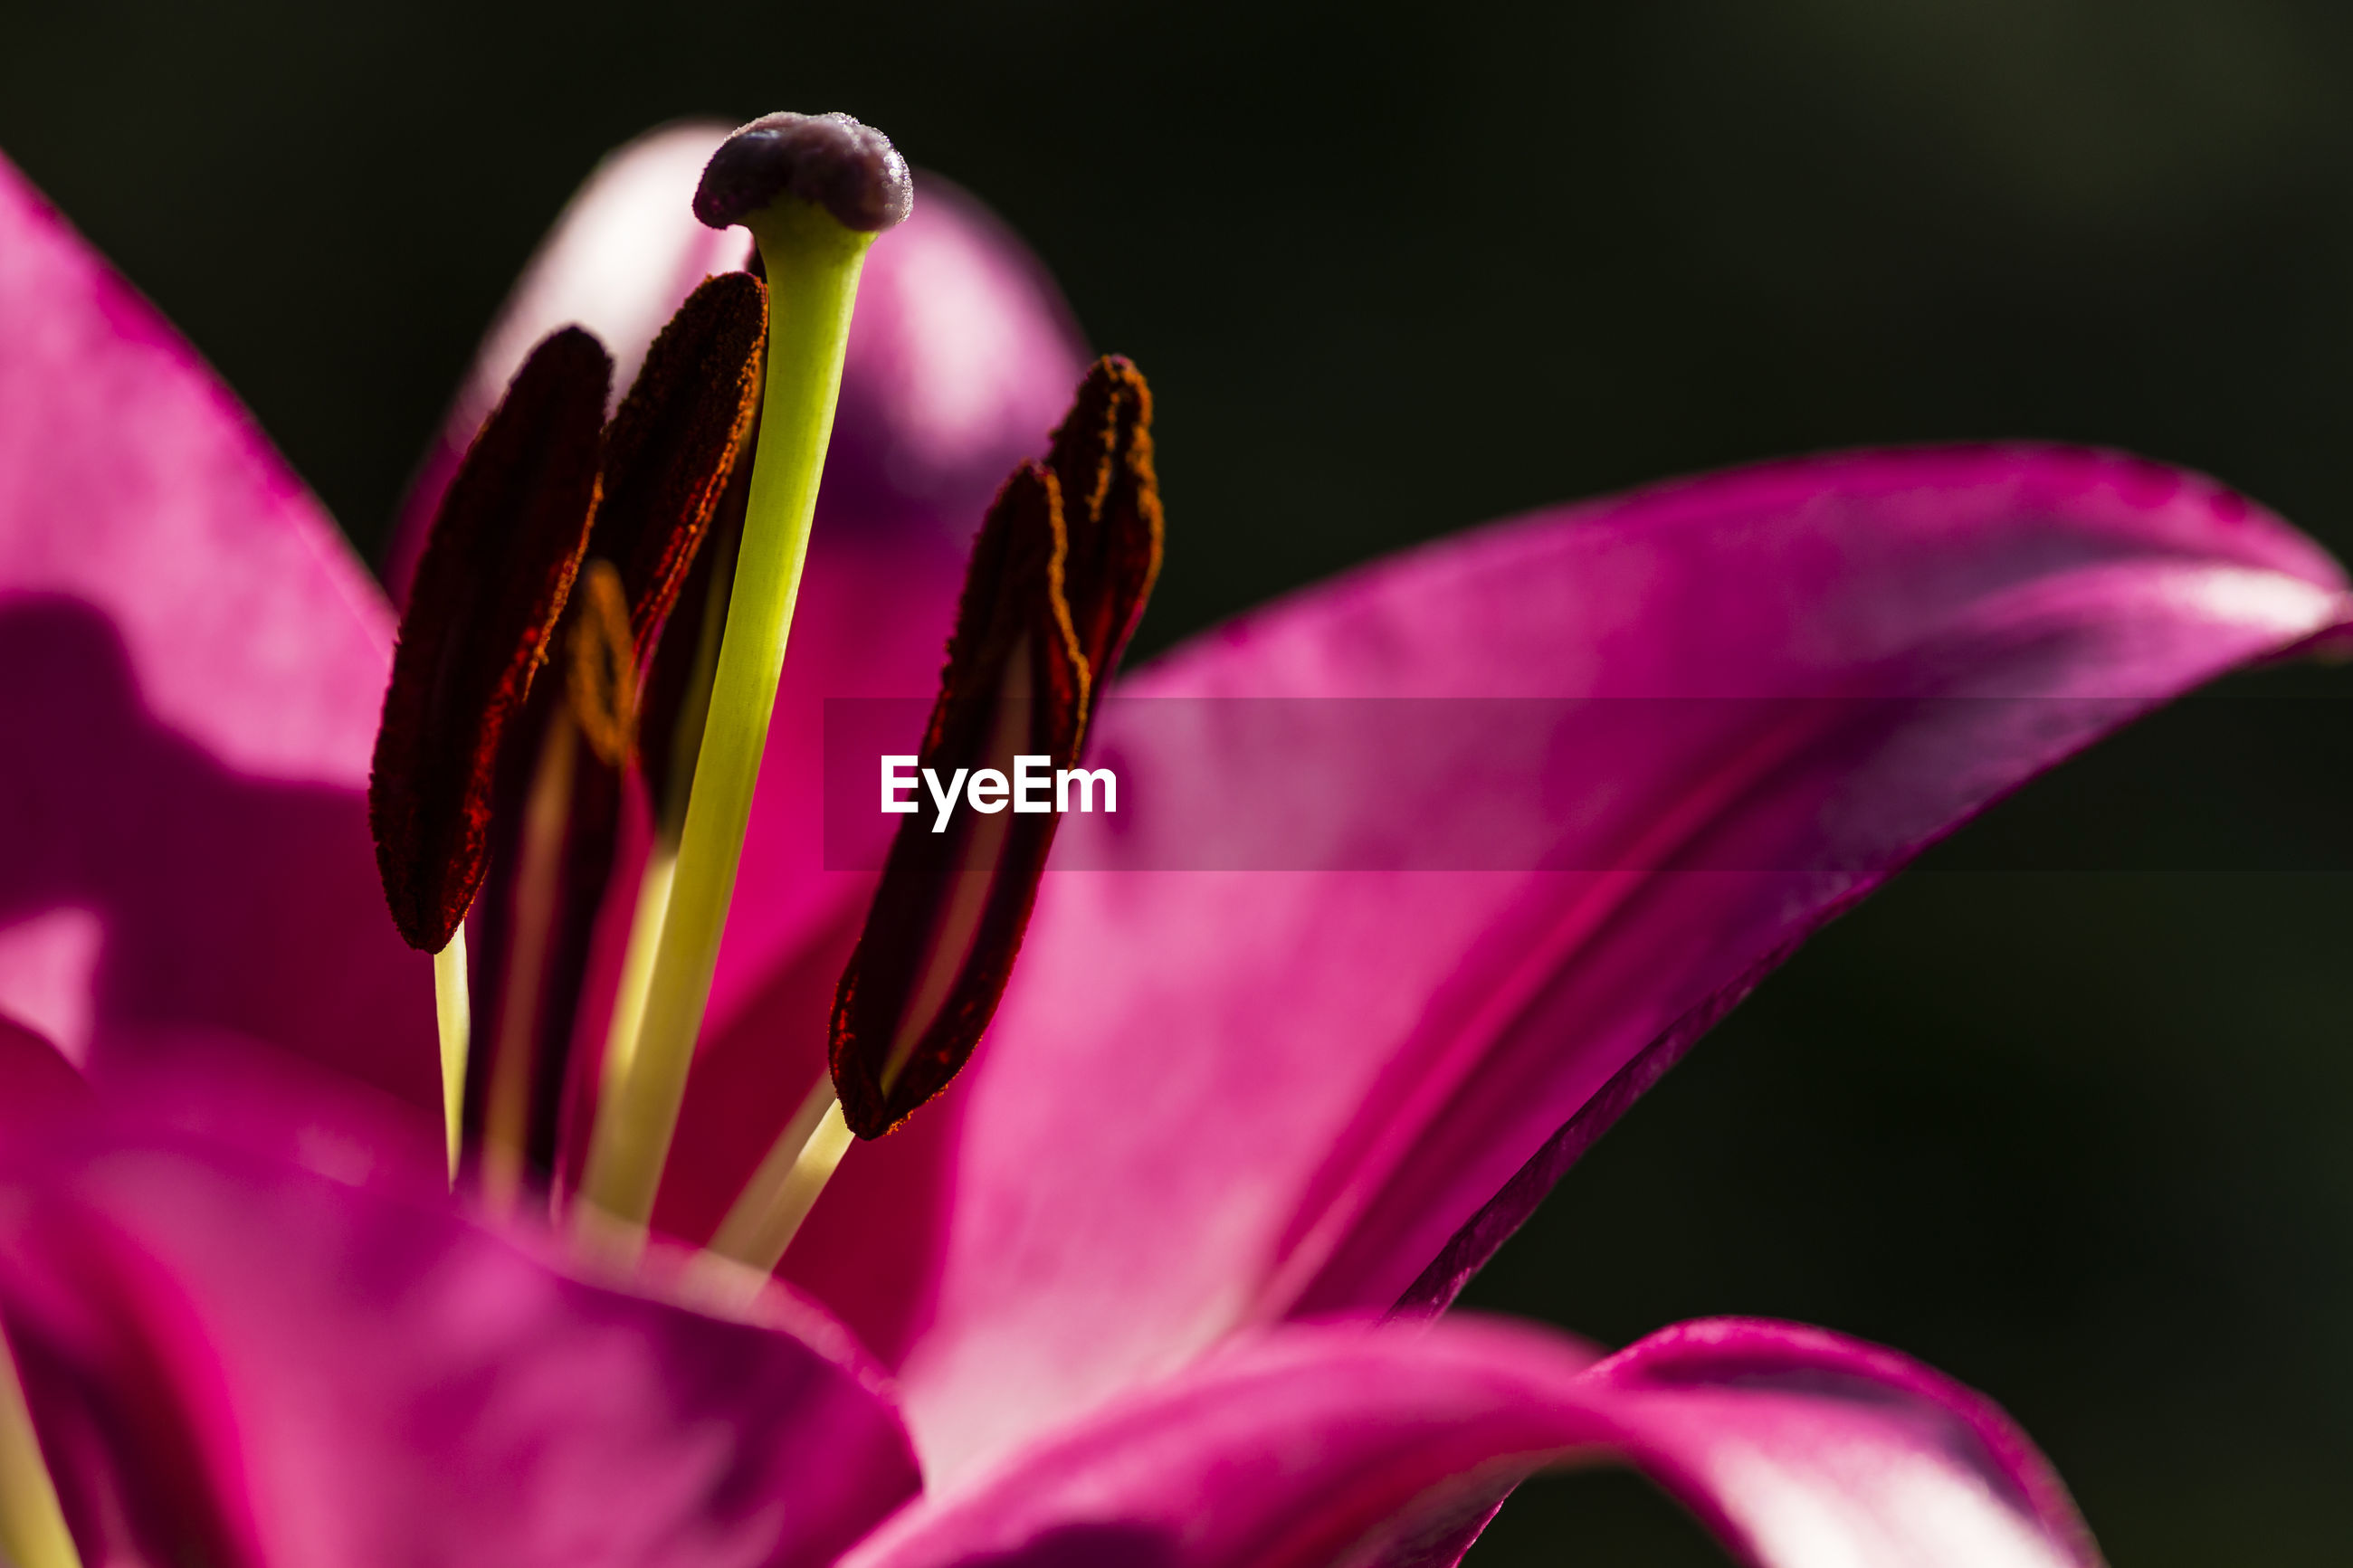 CLOSE-UP OF PINK DAY LILY